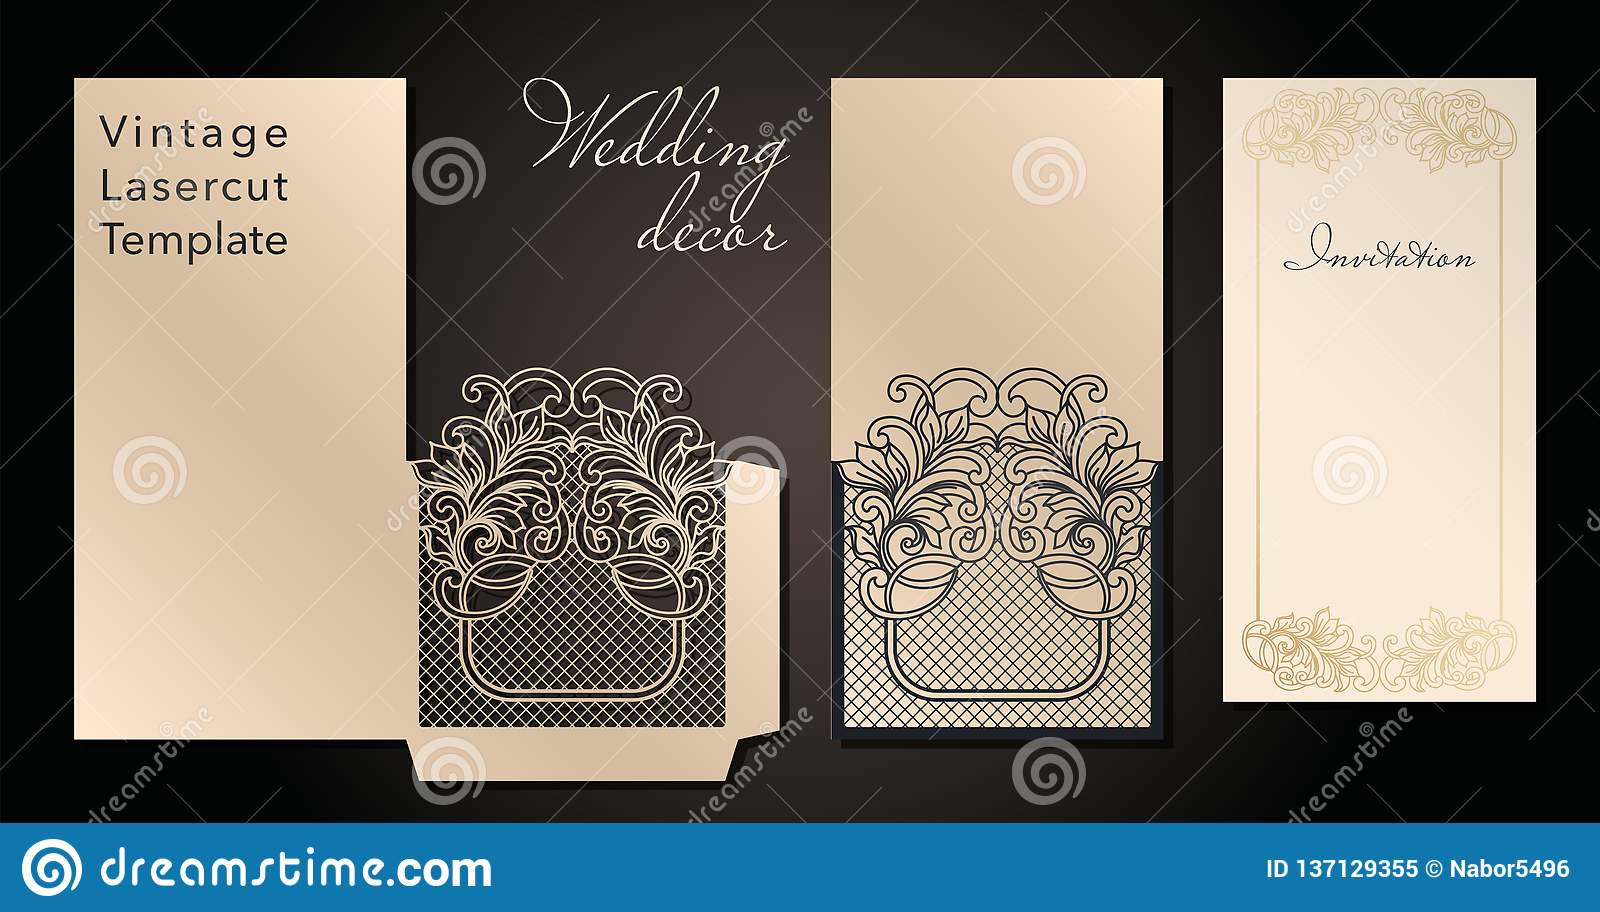 Decorative envelope and greeting card template for laser cutting. Cover design, invitations, save date in art Nouveau